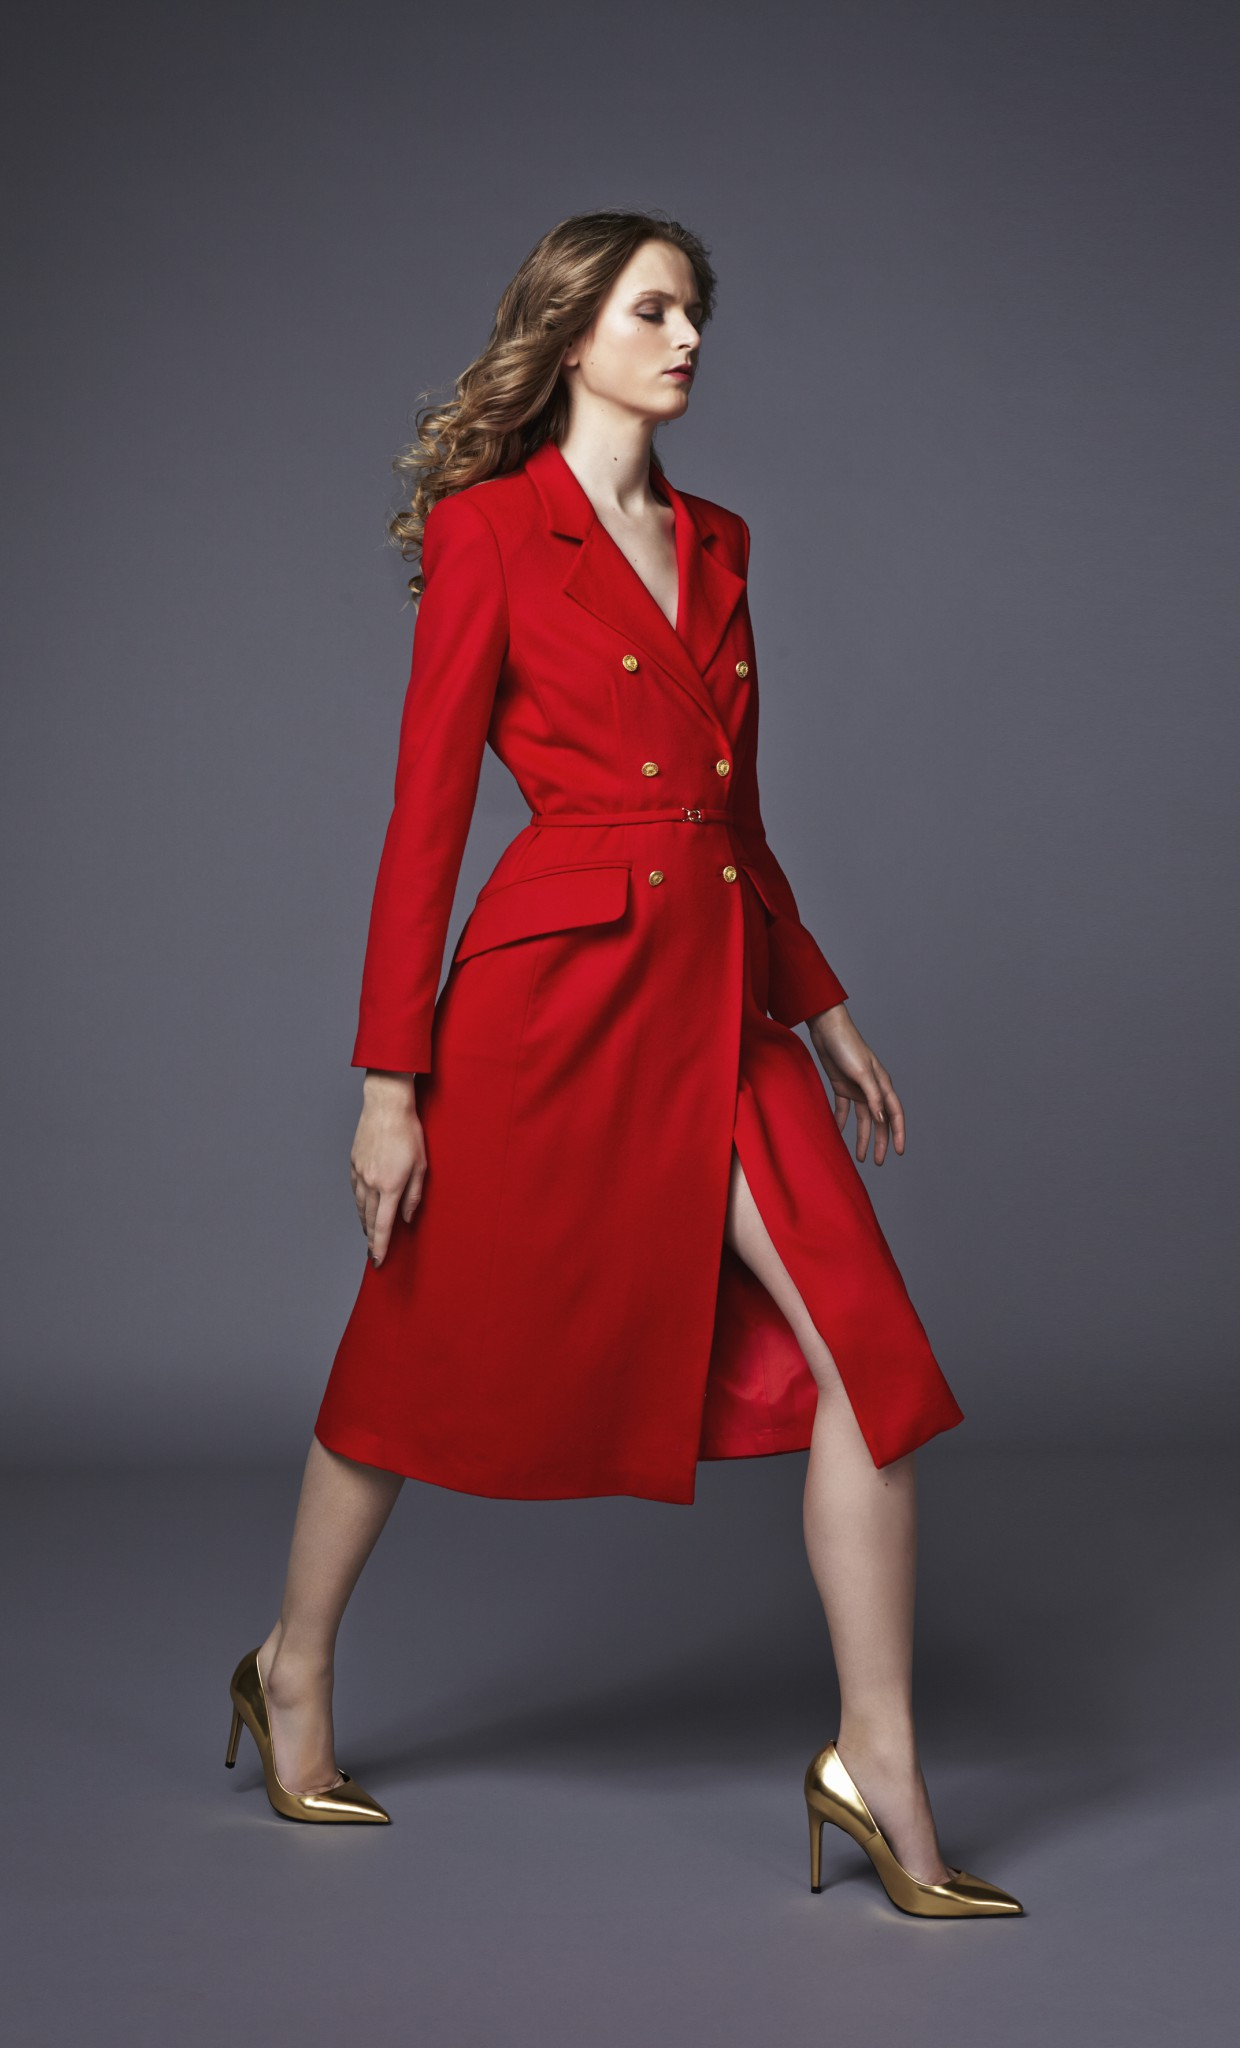 b4c1a1075 DOUBLE-BREASTED WOOL COAT WITH GOLDEN BUTTONS